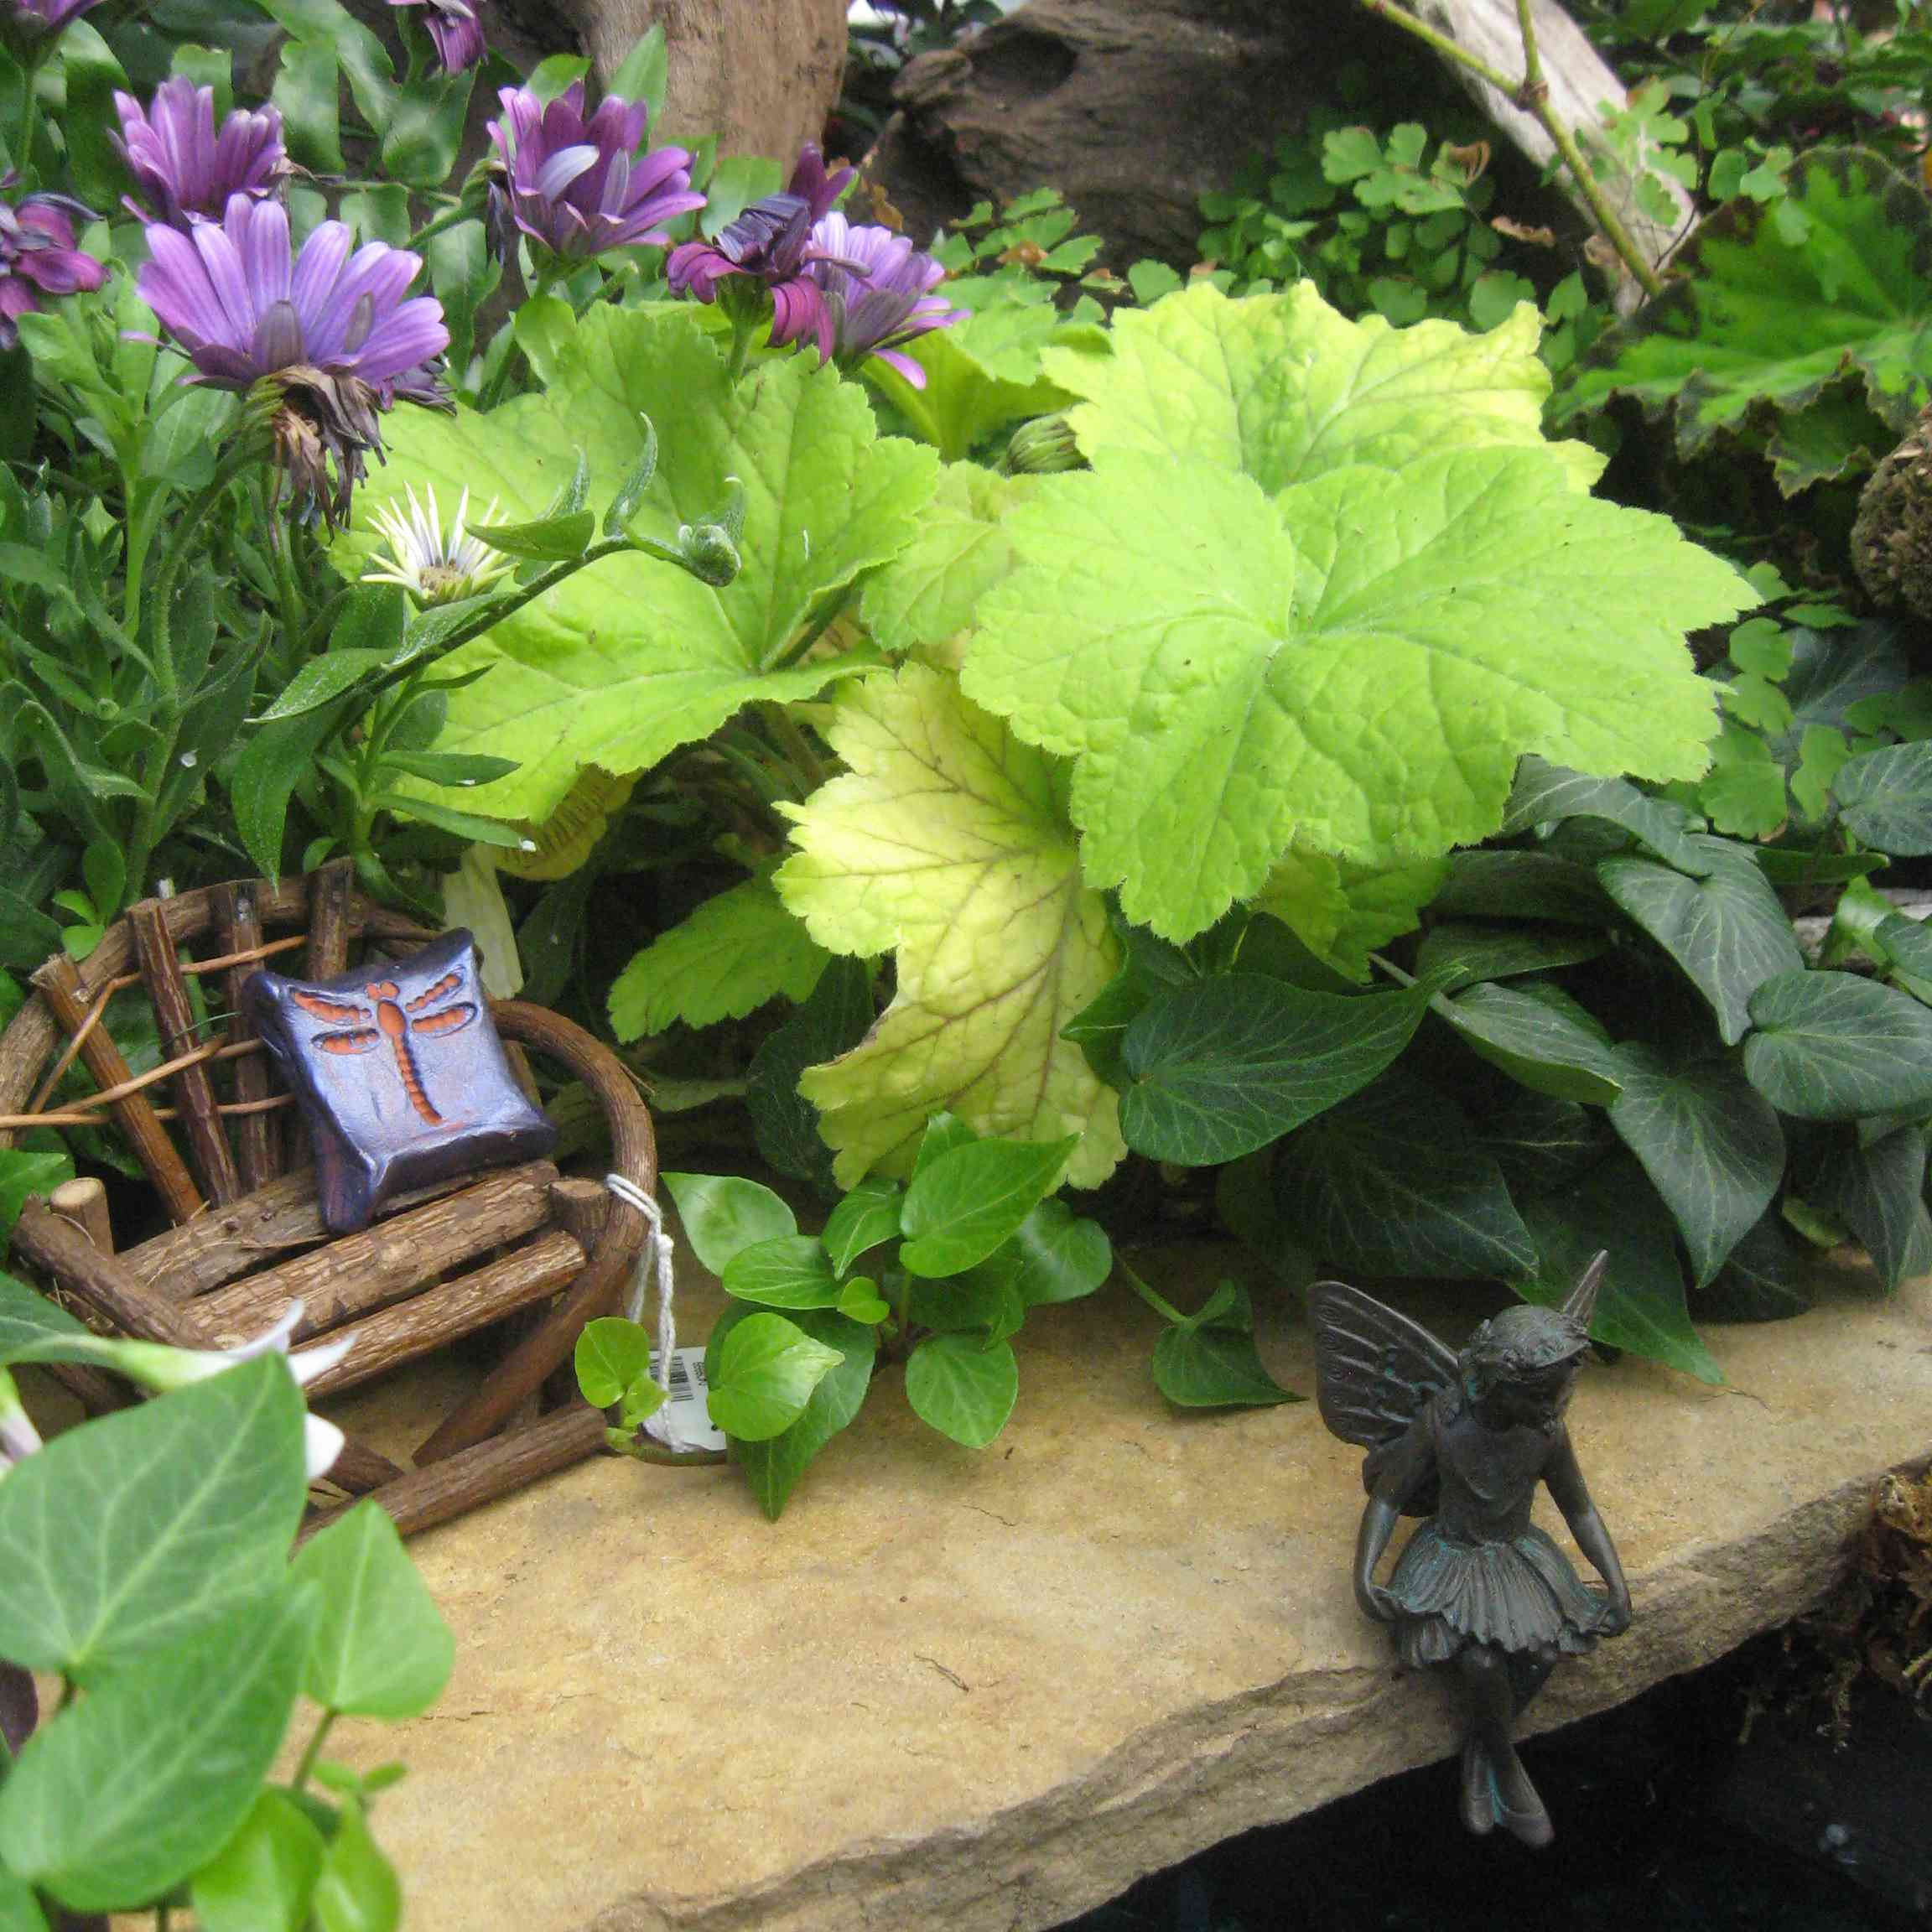 Miniature bench and fairy statue among plants.